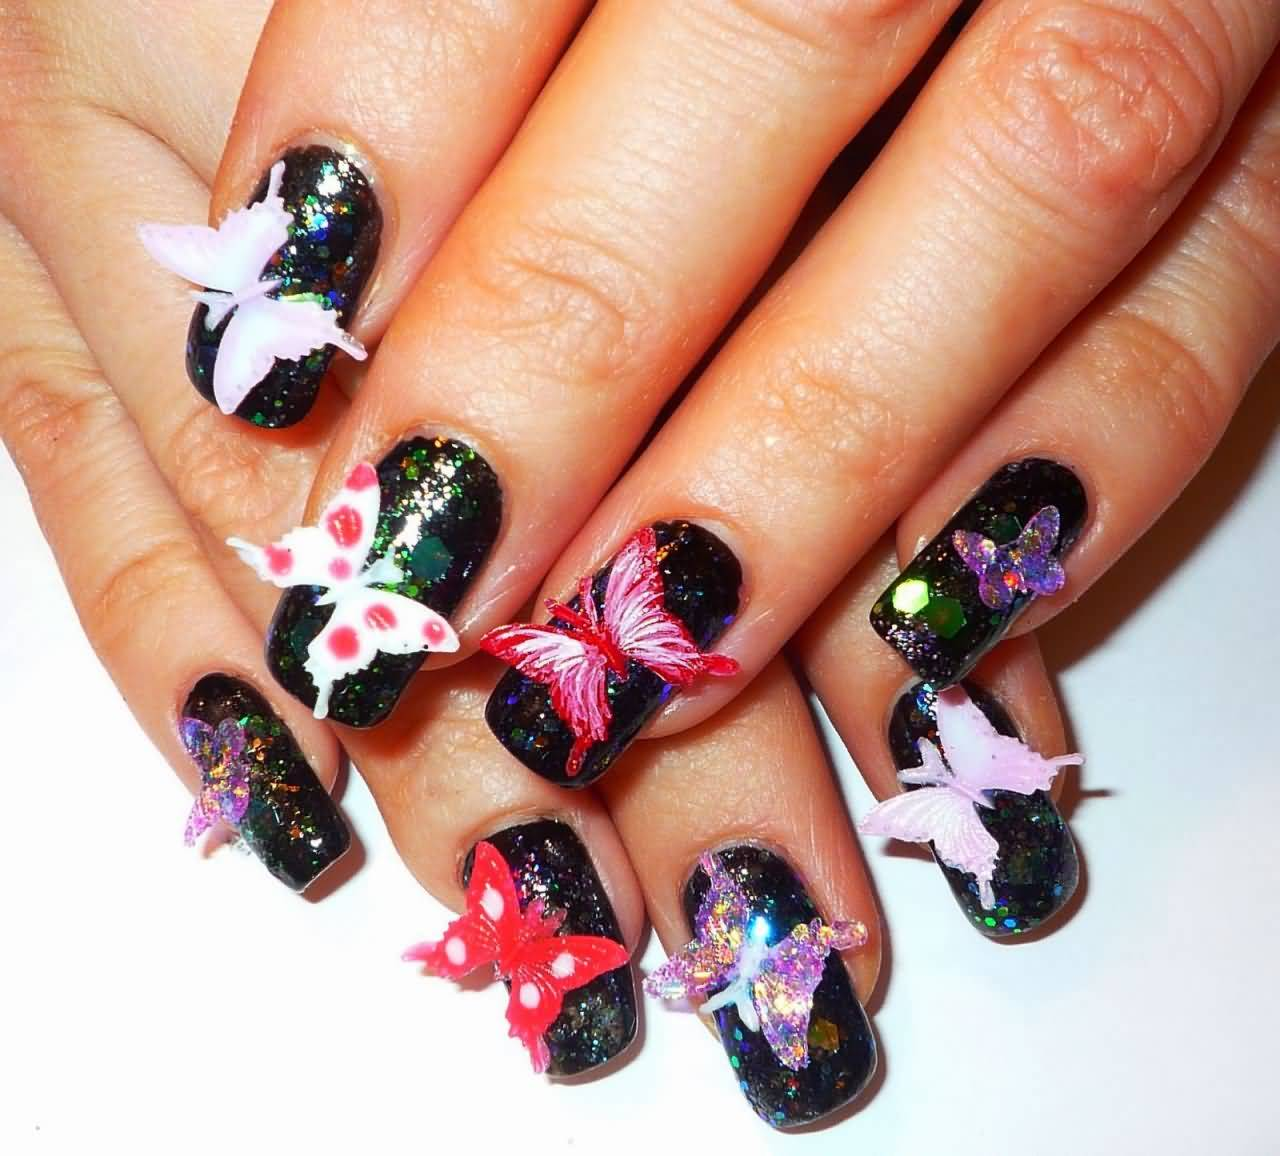 70 Most Beautiful 3d Nail Art Design Ideas For Trendy Girls: 35+ Best 3D Rose Flowers Nail Art Design Ideas